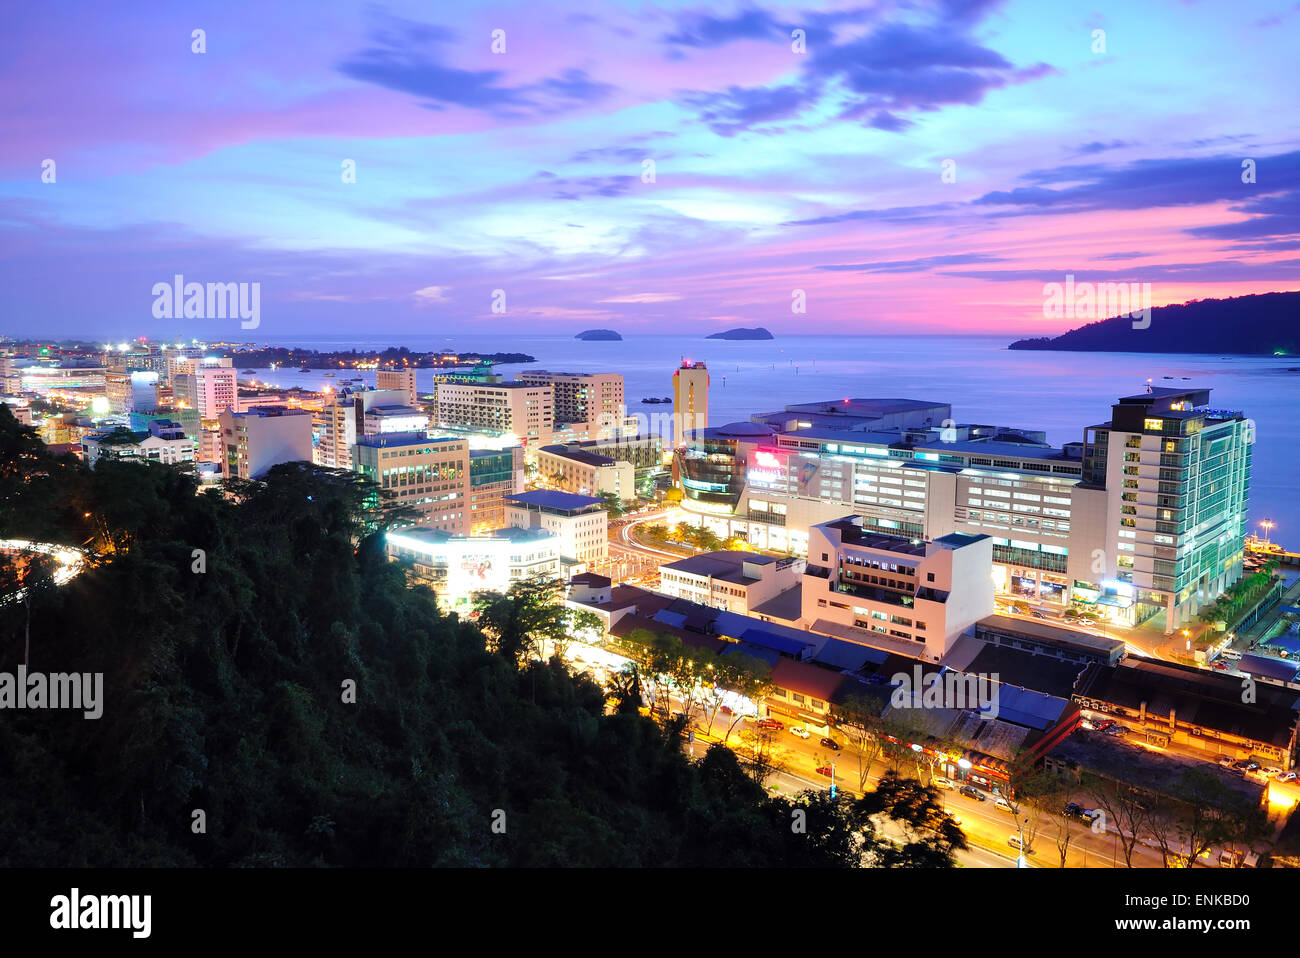 Kota Kinabalu Night scenery during sunset, Kota Kinabalu is the capital city of the state of Sabah, located in East - Stock Image